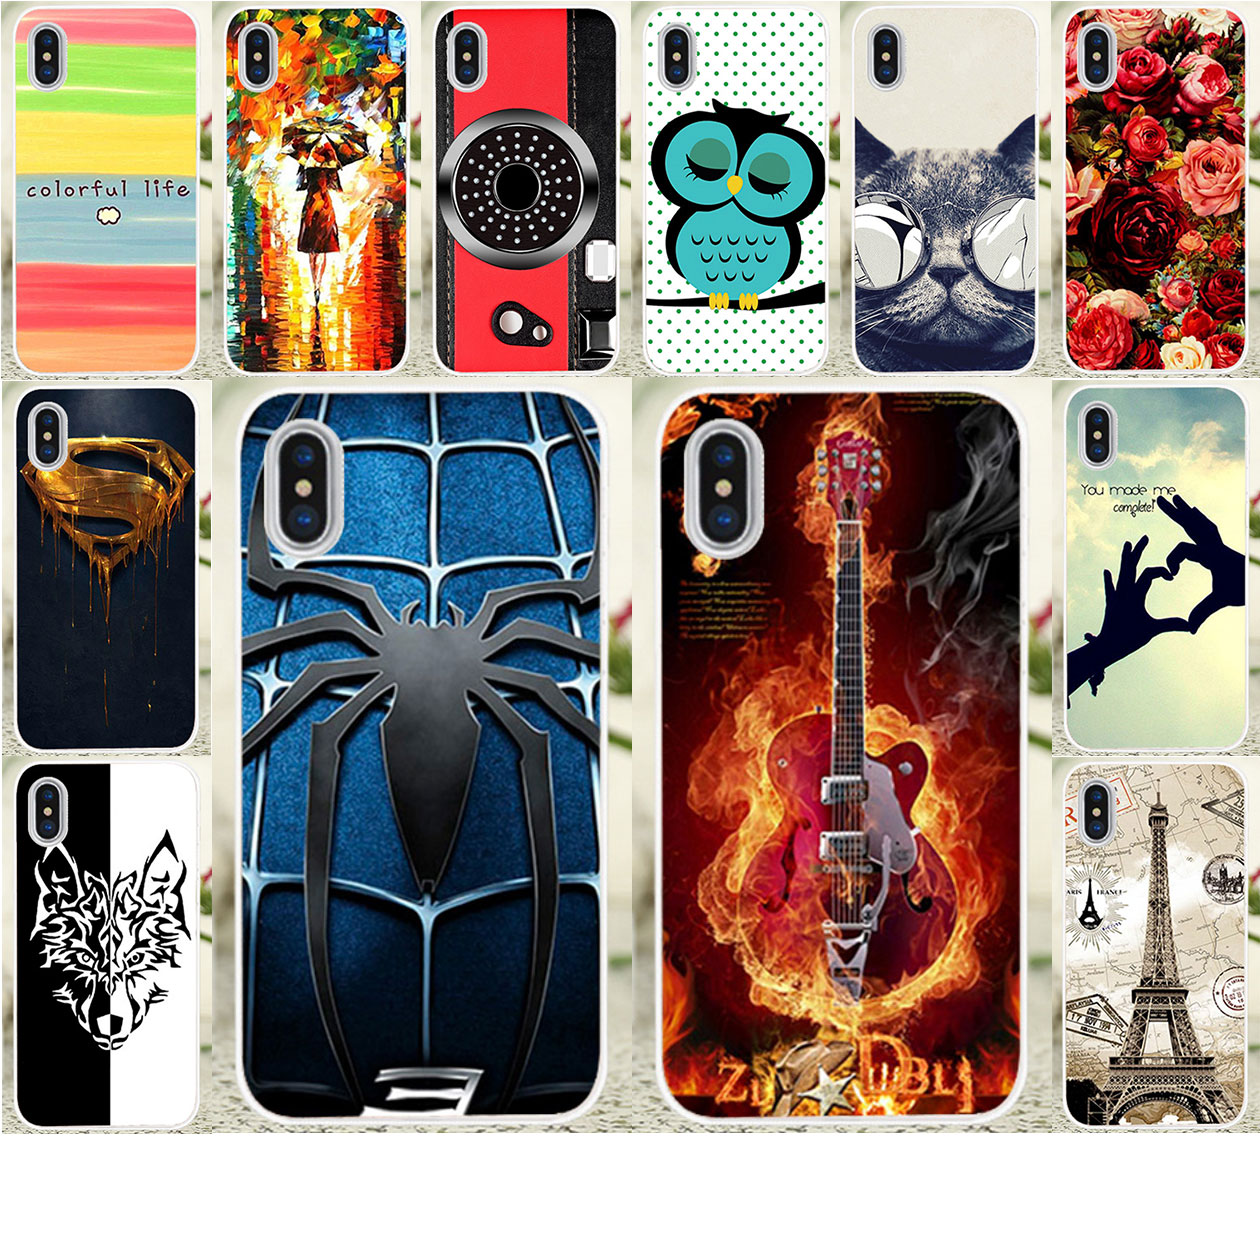 TAOYUNXI Cell Phone Case For <font><b>Asus</b></font> <font><b>Zenfone</b></font> <font><b>5</b></font> <font><b>A501CG</b></font> <font><b>A500CG</b></font> <font><b>Asus</b></font>_T00J A500KL <font><b>5</b></font>.0inch Zenfone5 Plastic TPU Silicone Case Cover Bag image